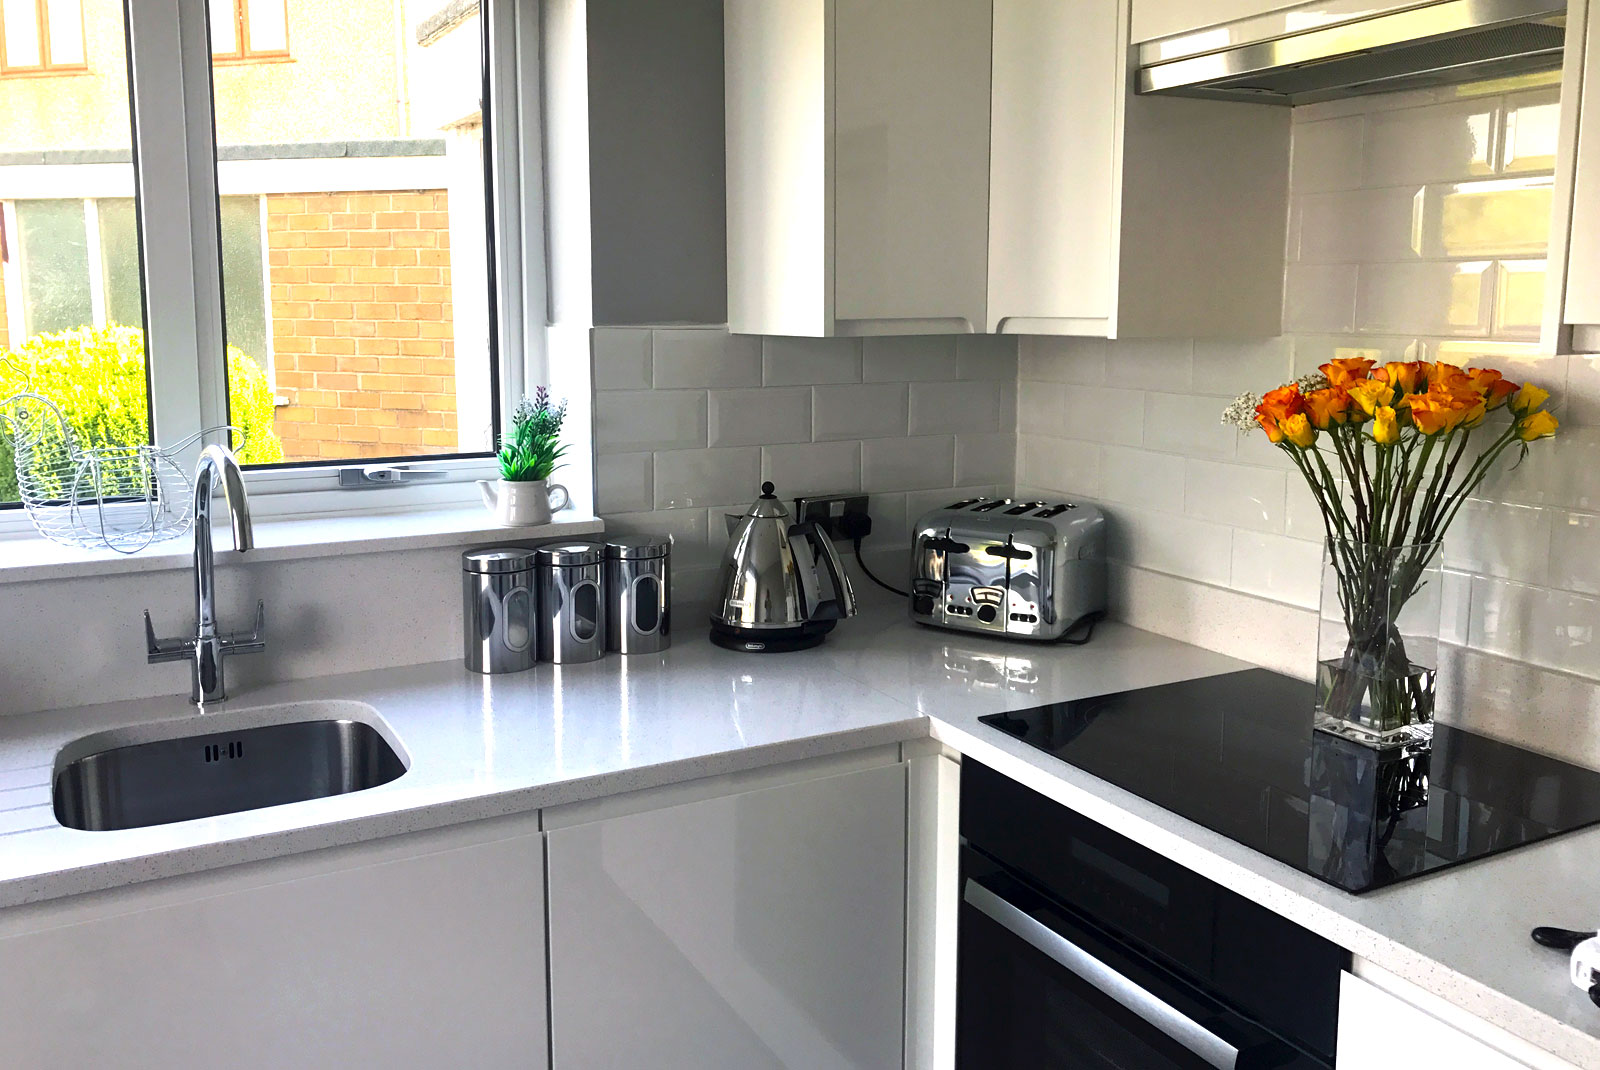 Natalie from Huddersfield Love my kitchen from DIY